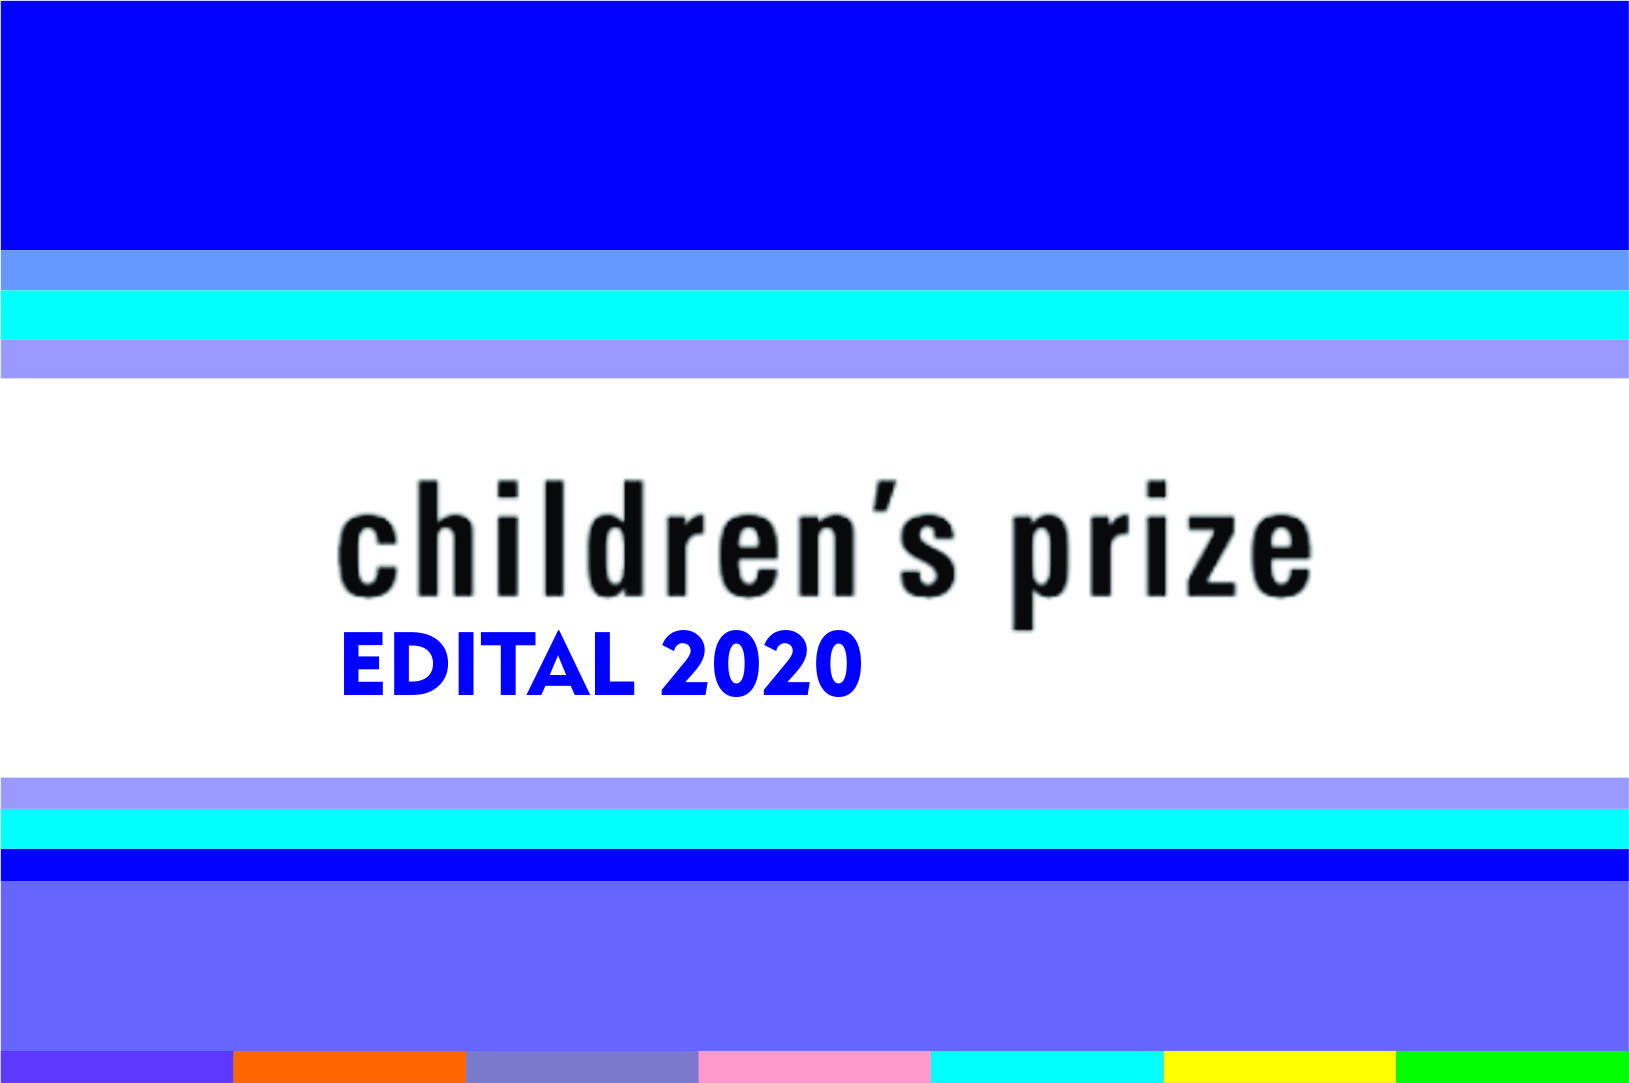 Edital Childrens Prize 2020